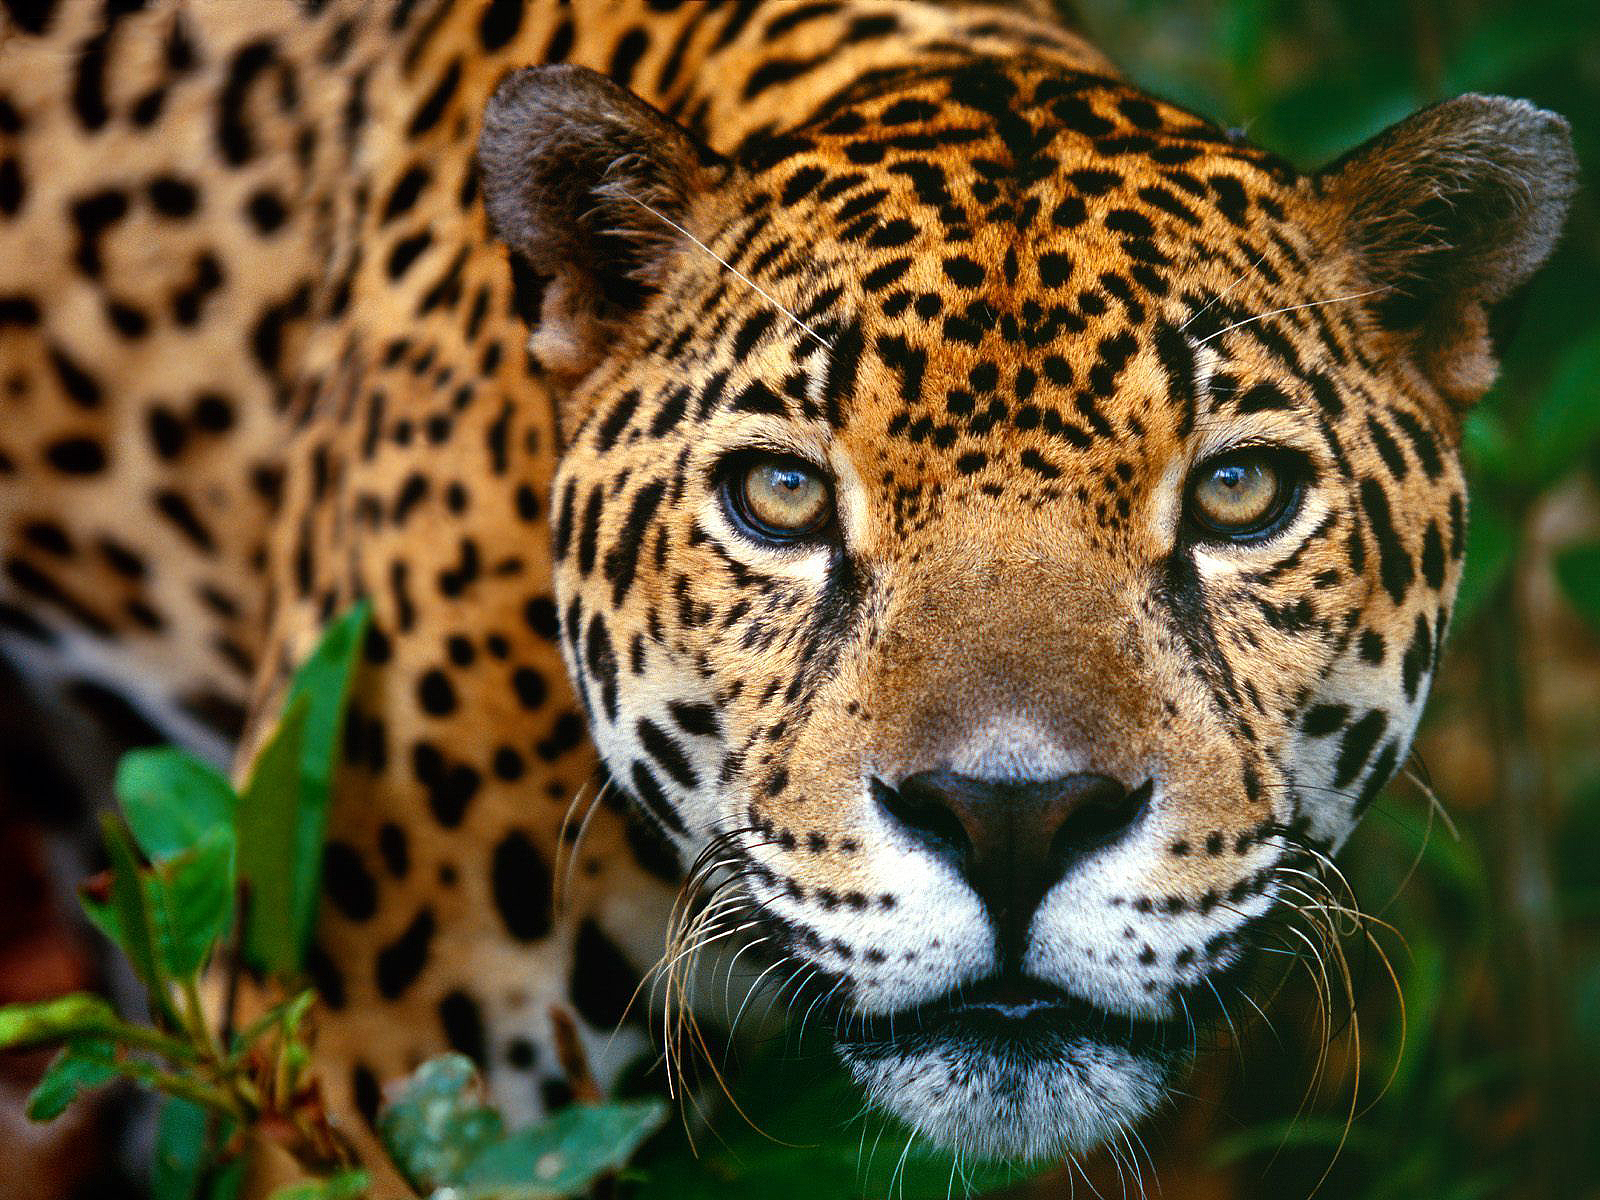 Jaguar_Belize.jpg